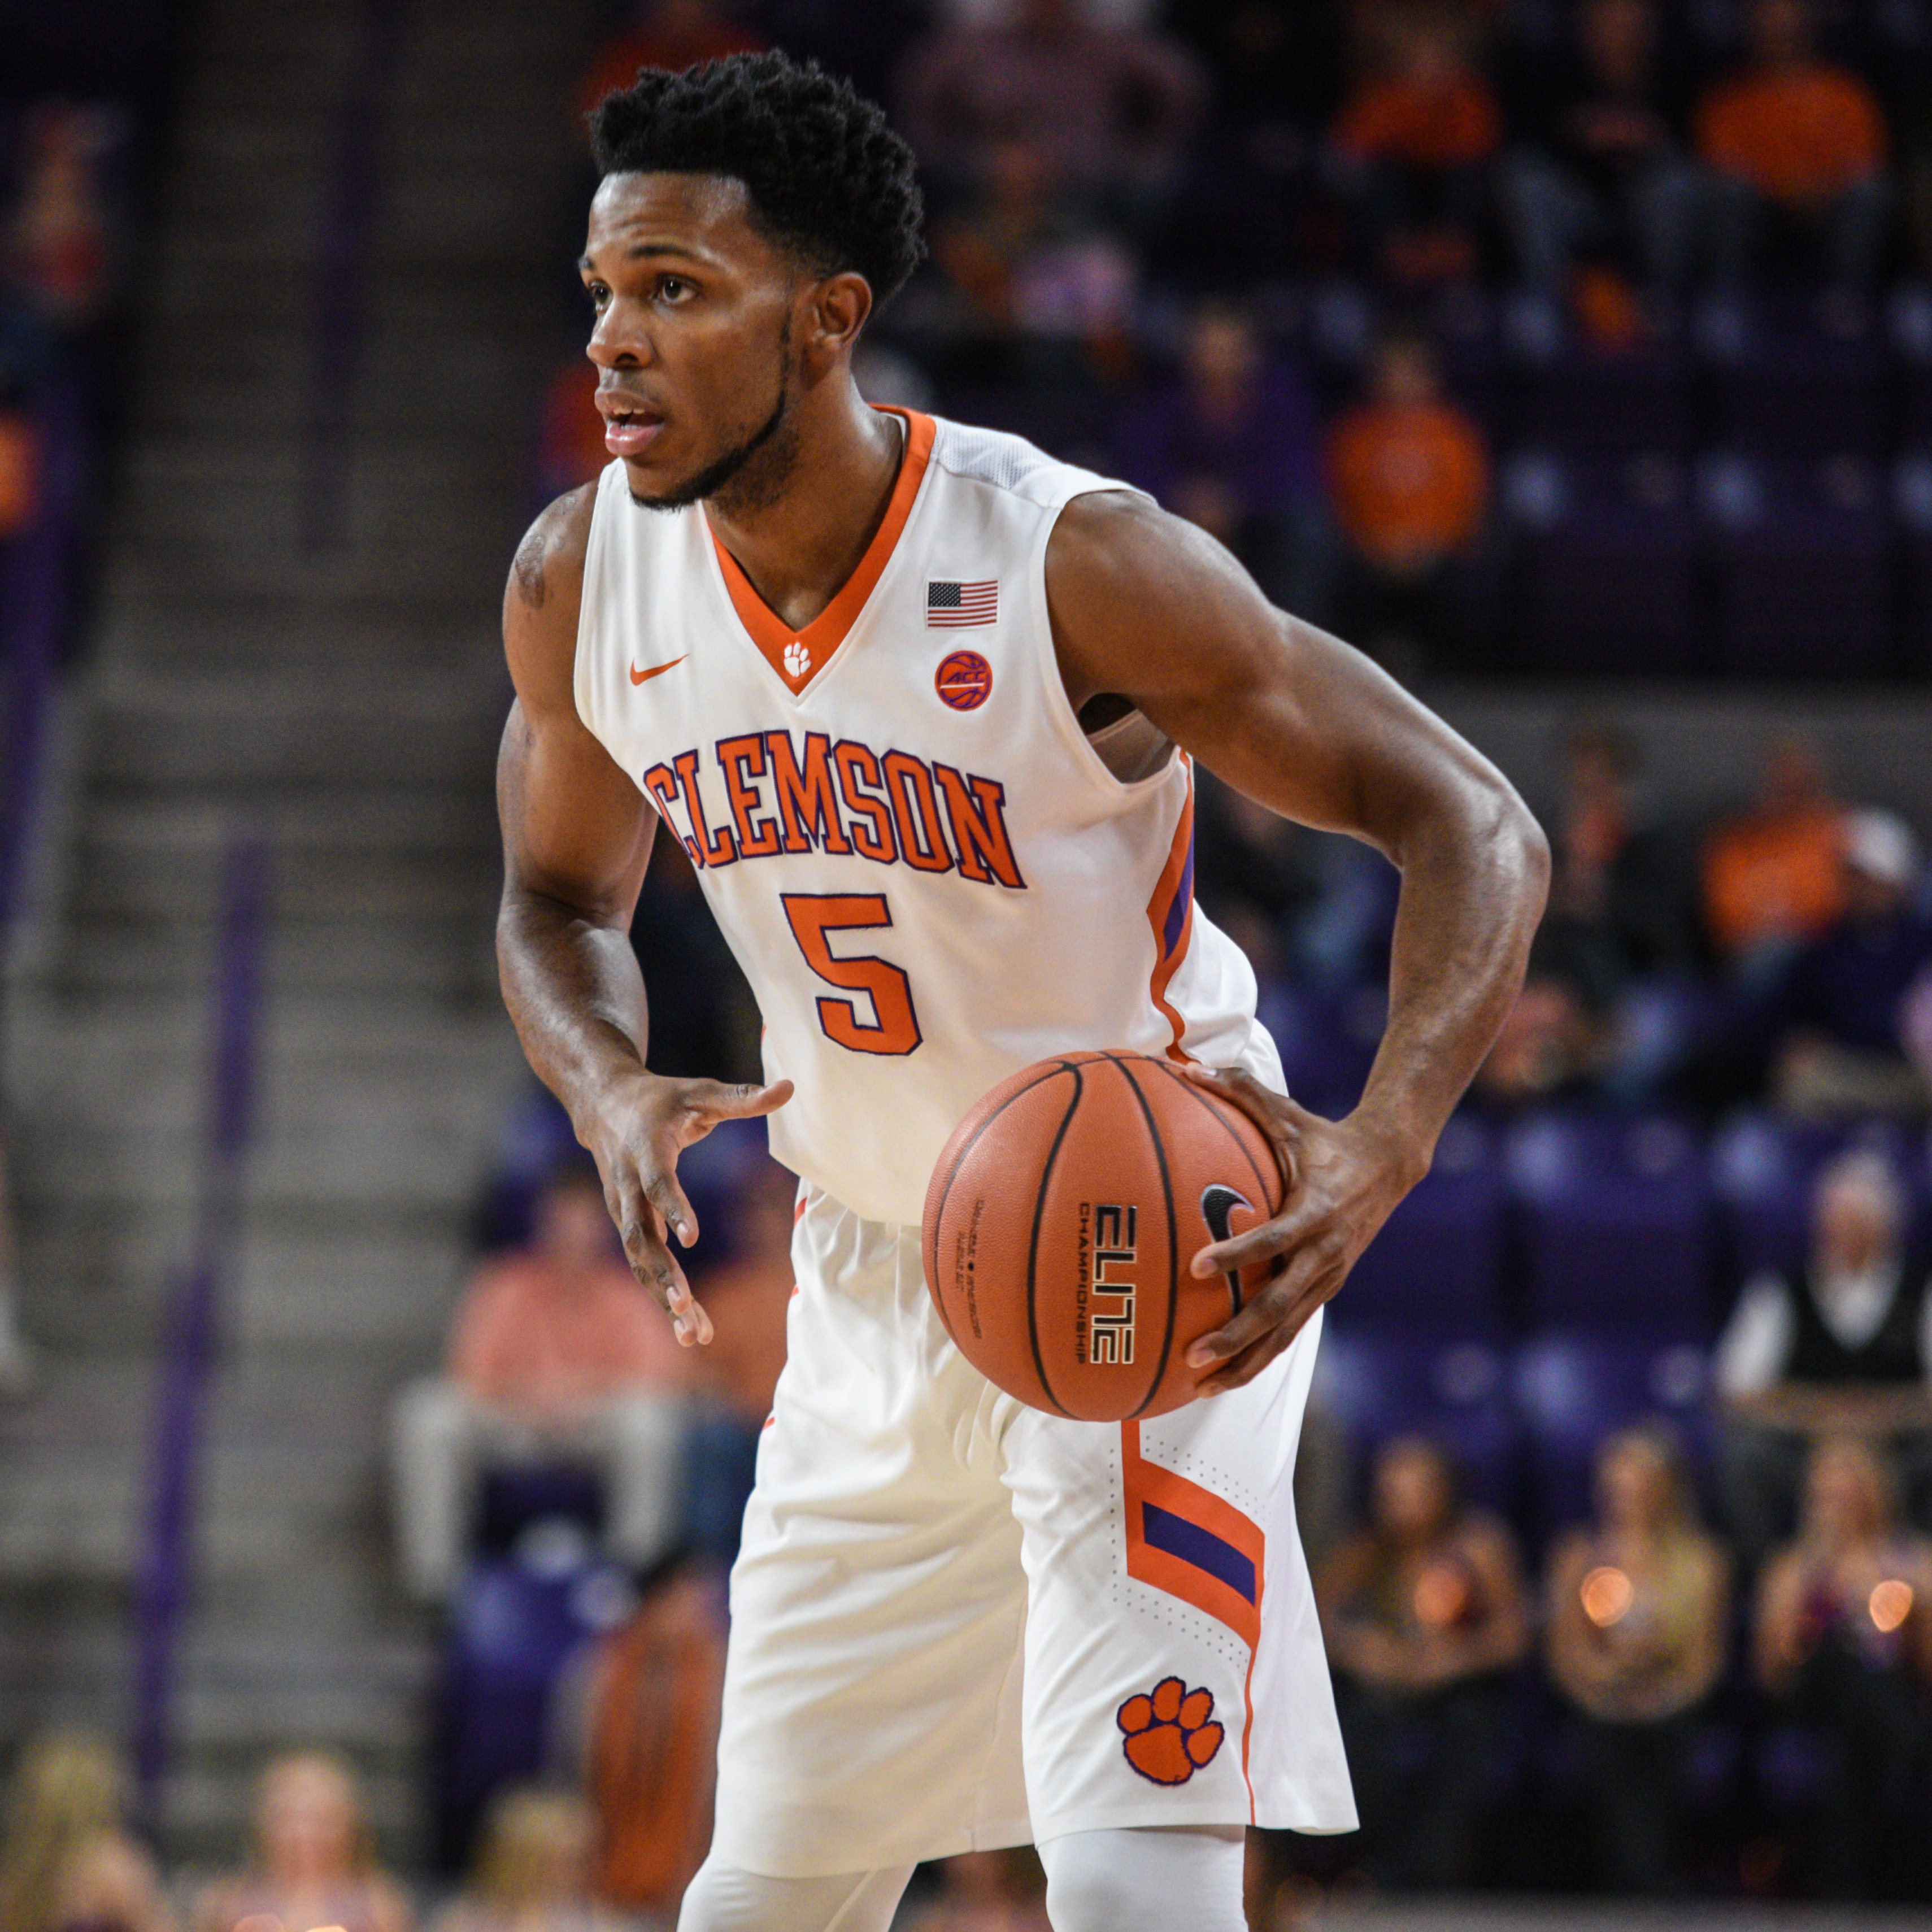 Tigers Face Coppin State Sunday